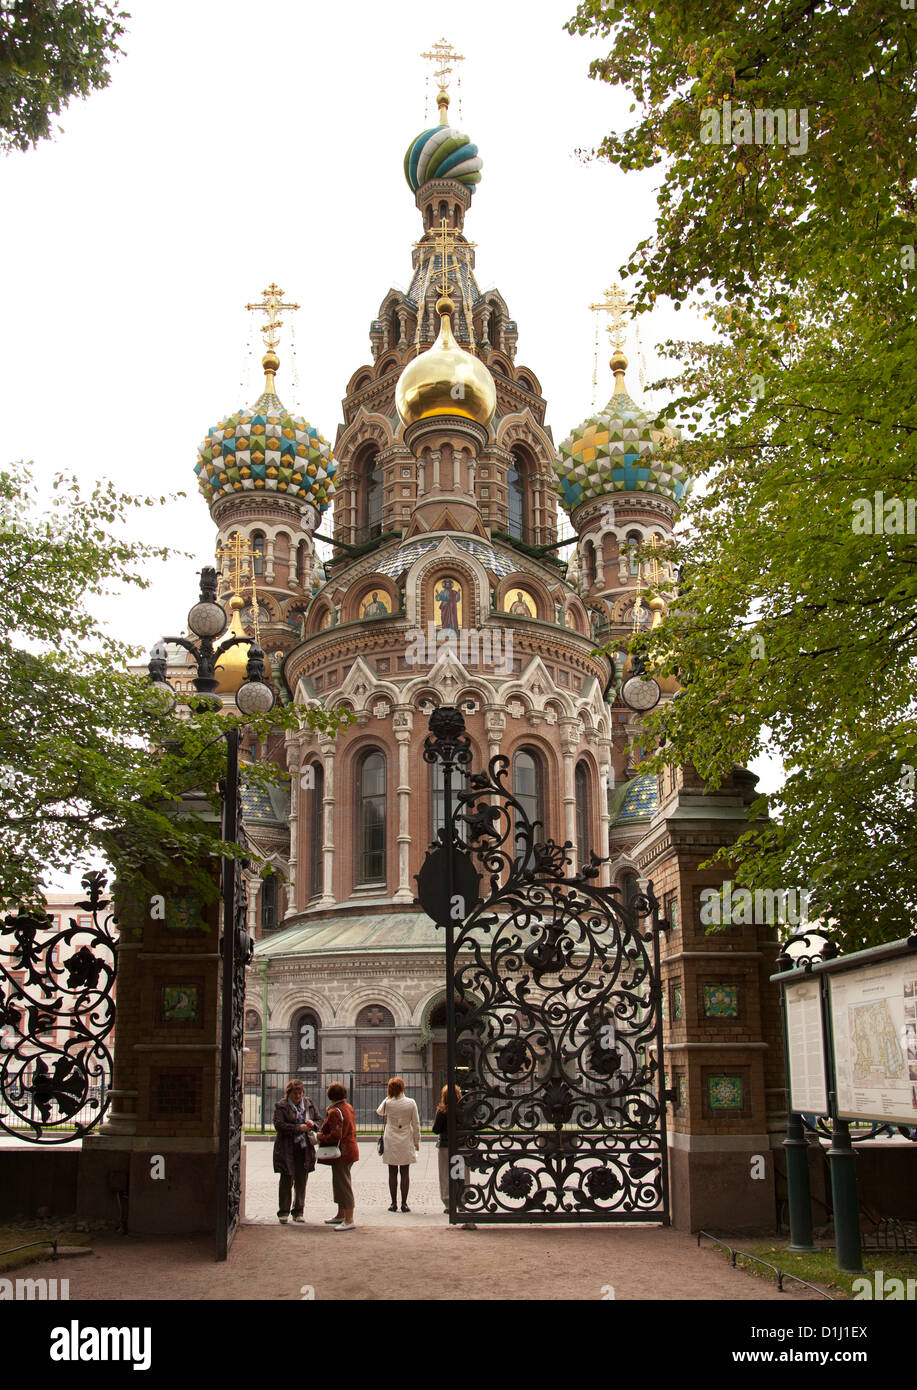 The Church of the Savior on Spilled Blood in Saint Petersburg, Russia. - Stock Image